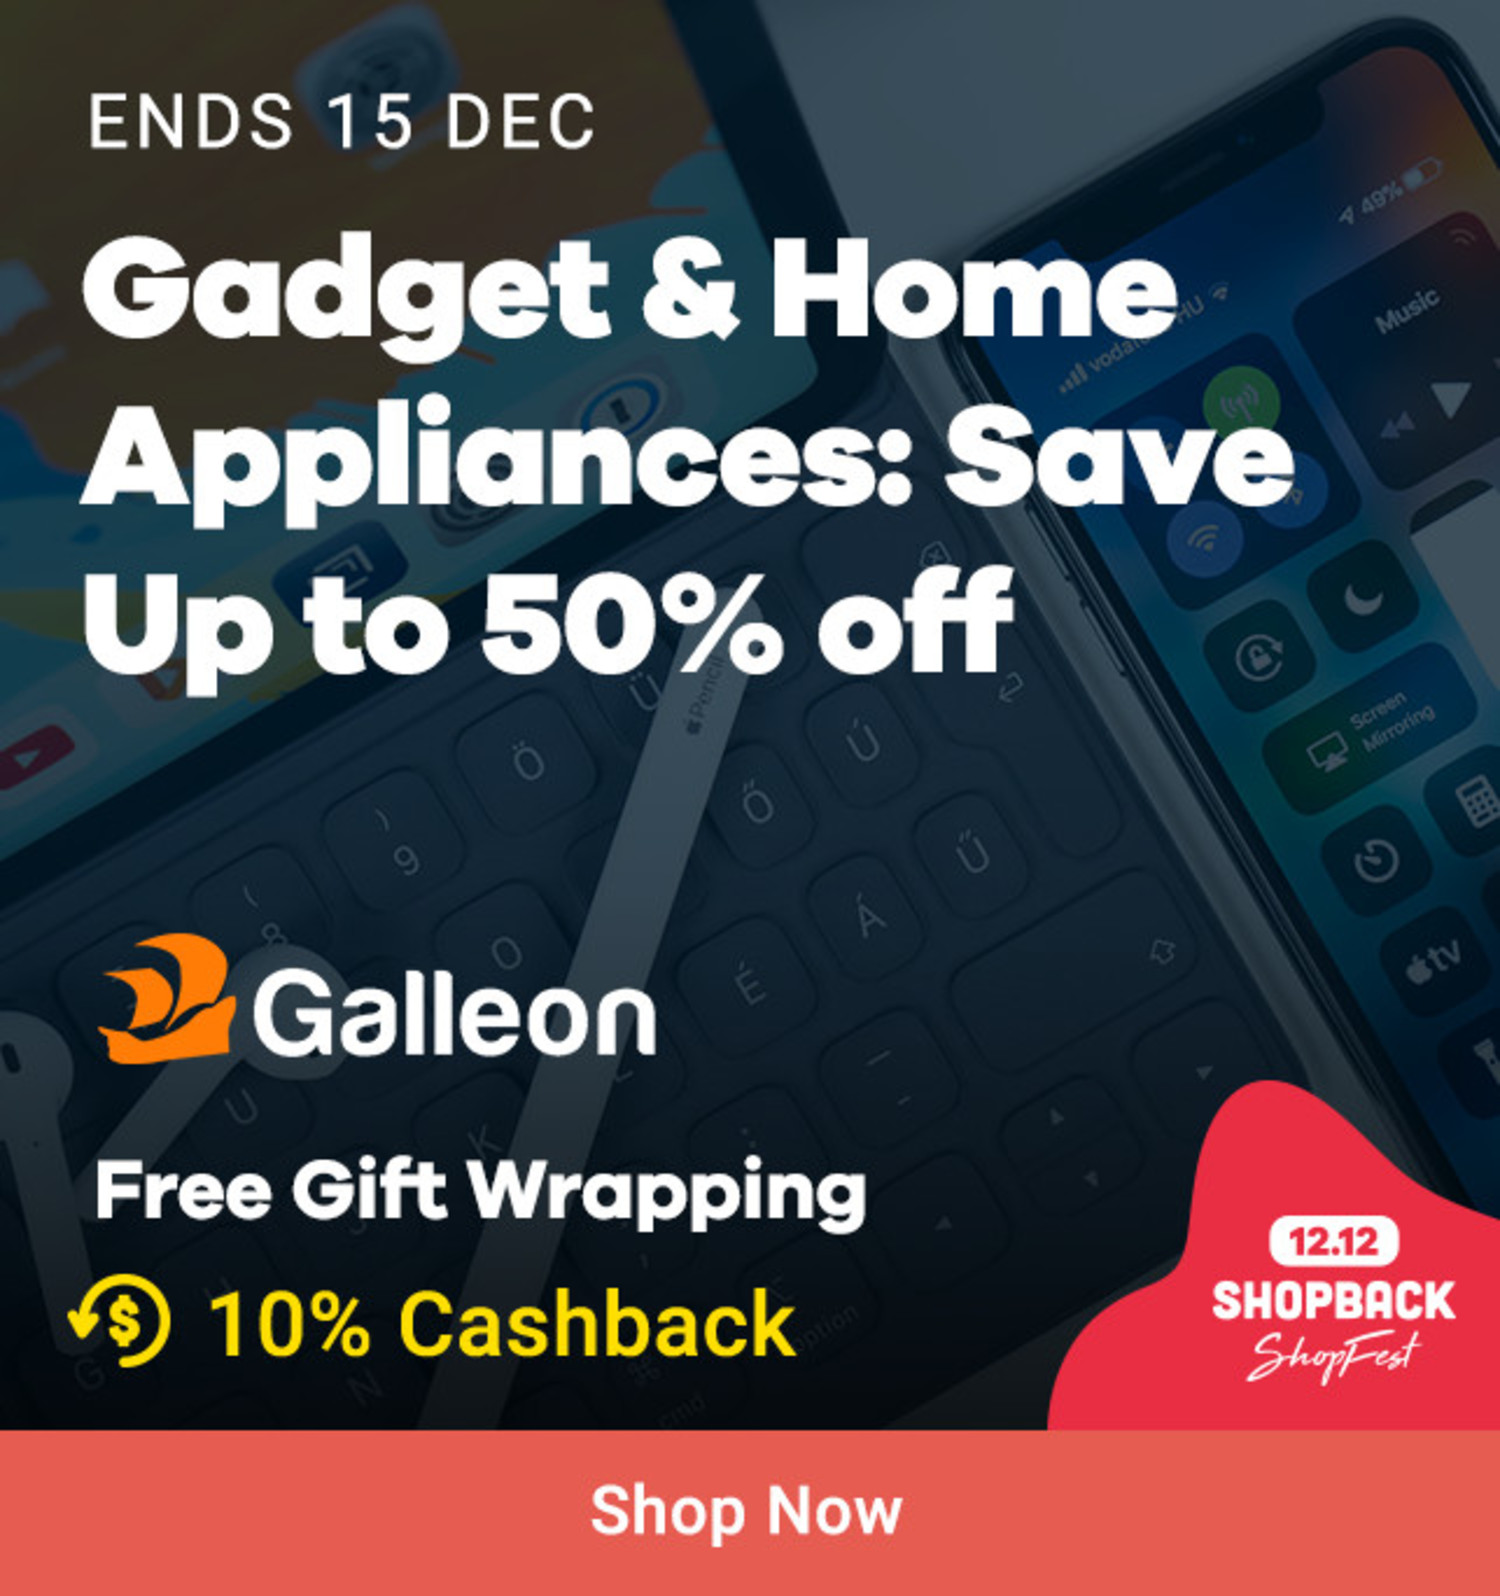 Galleon: Gadget & Home 50% off